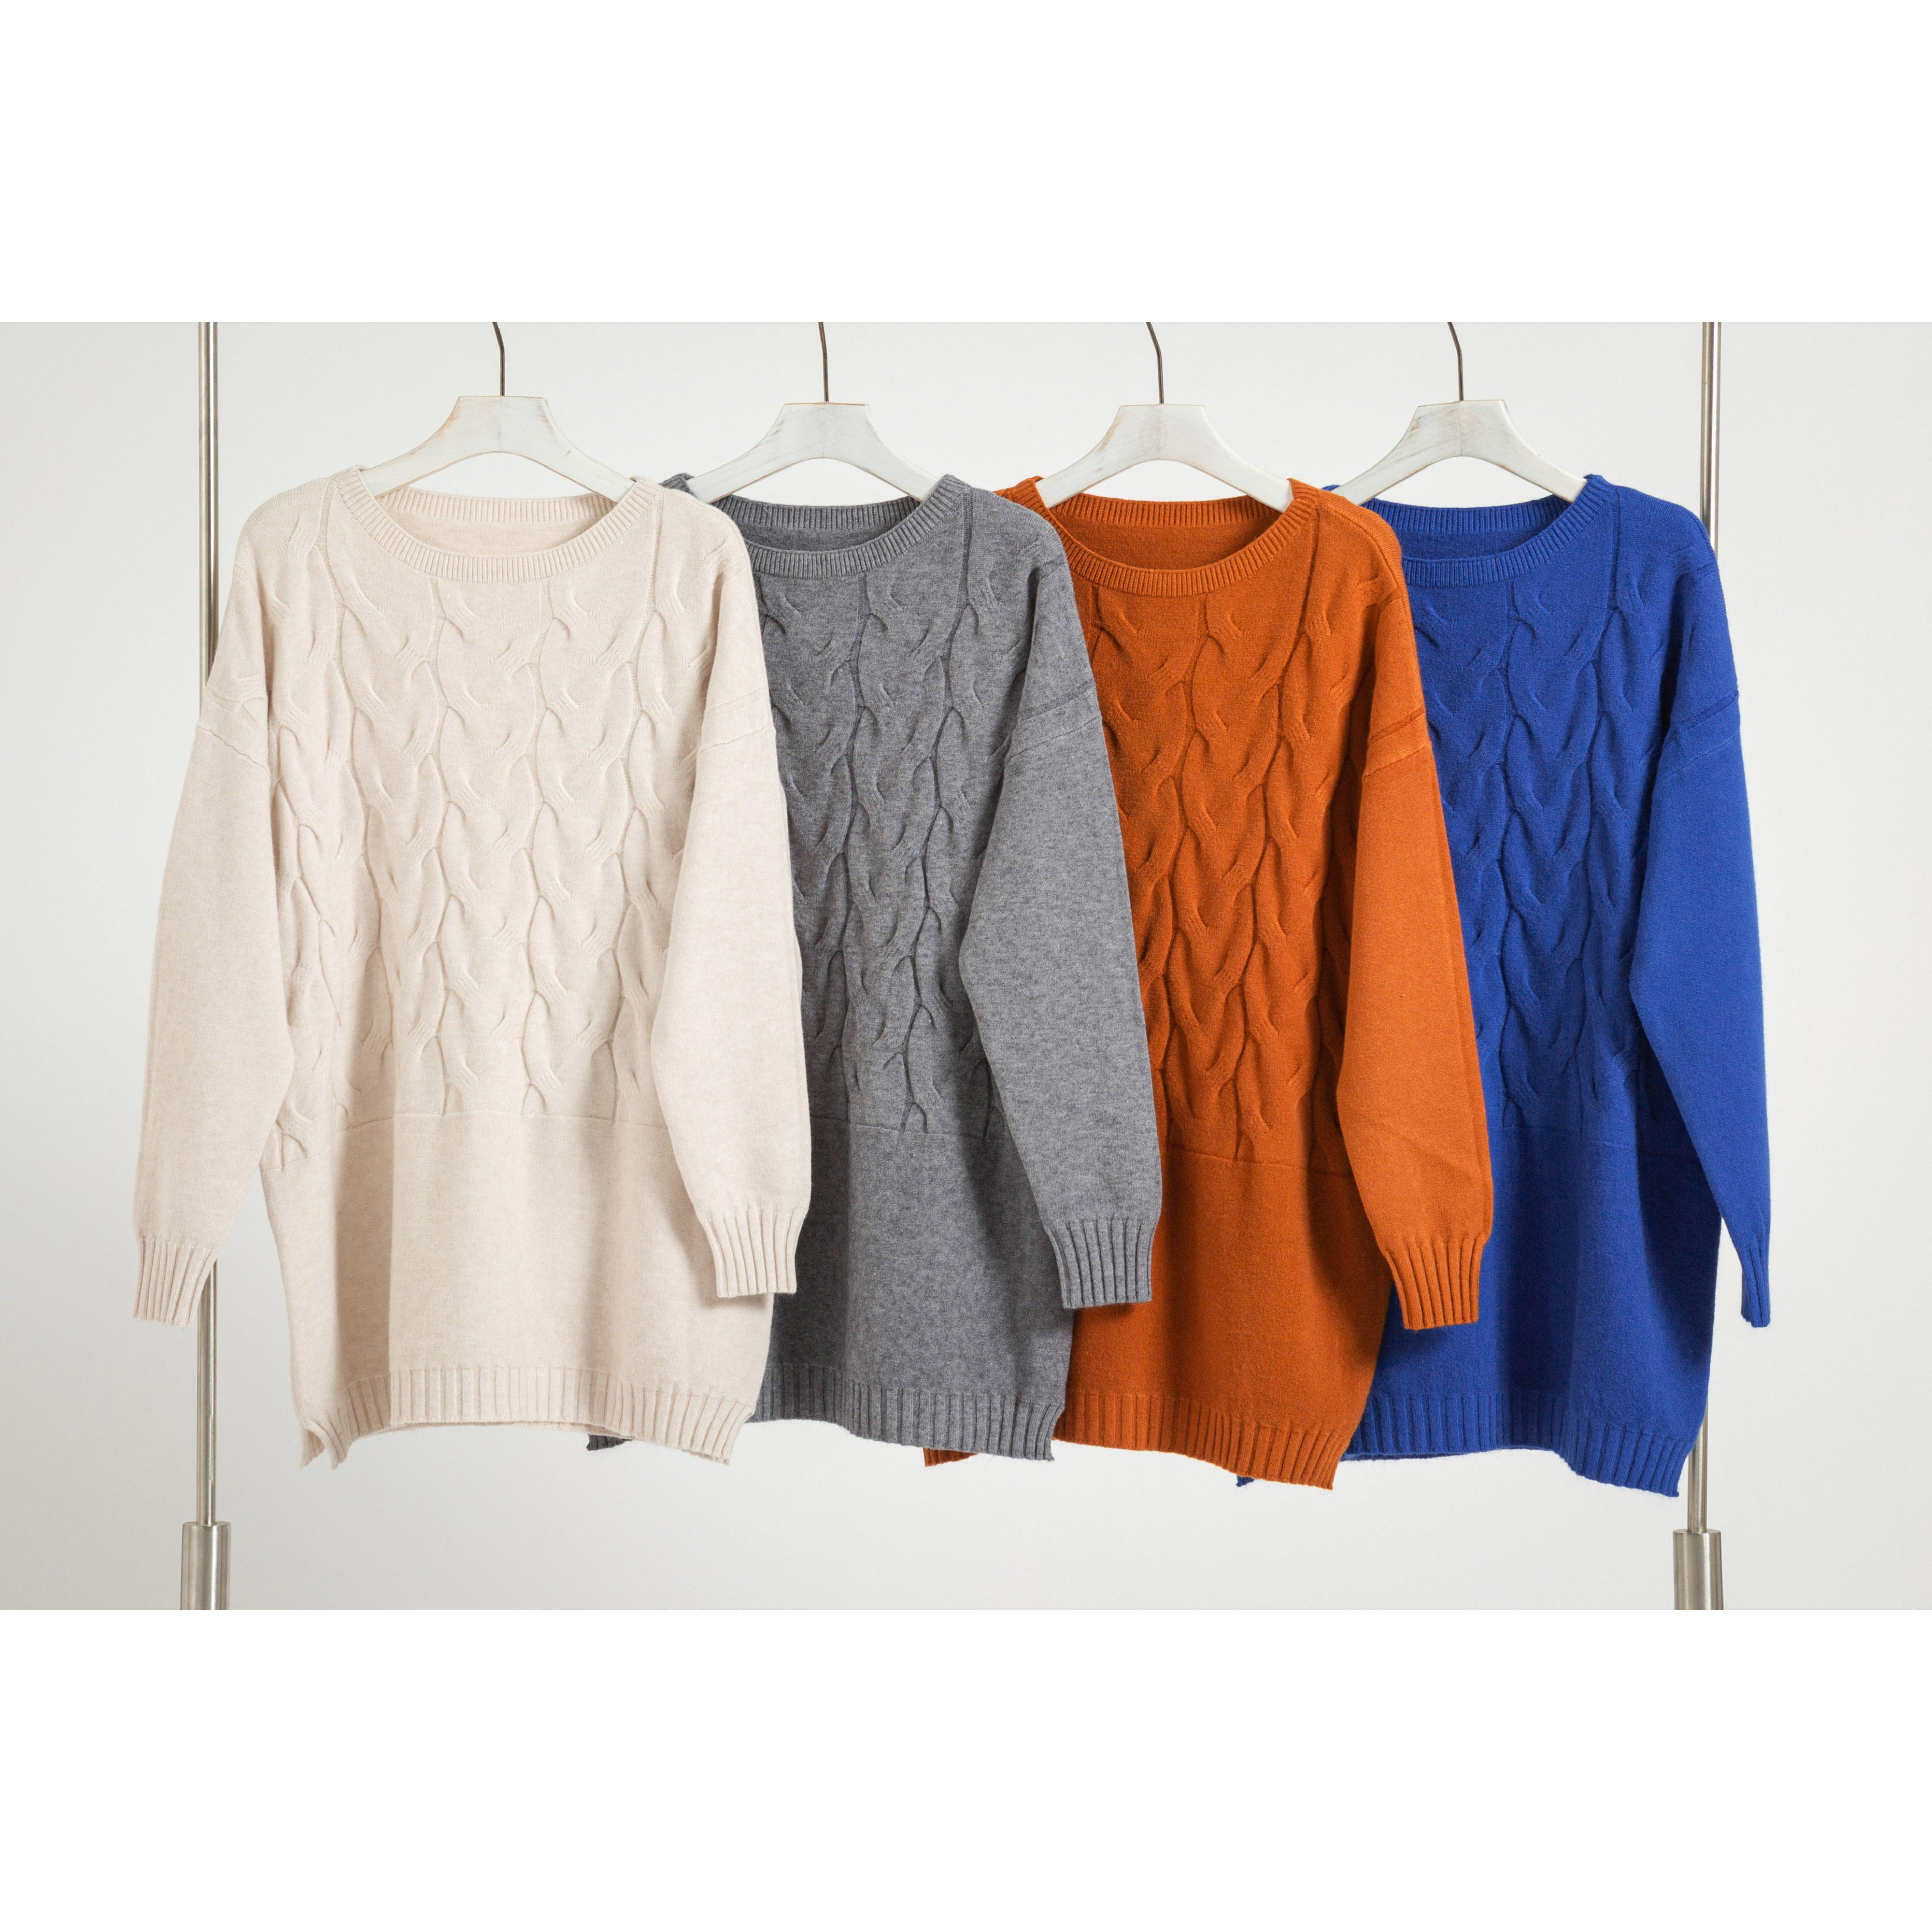 Fashion Custom Women Oversize Knit Top Knitwear O Neck Long Sleeve Knitted Sweater for Women (4colors)